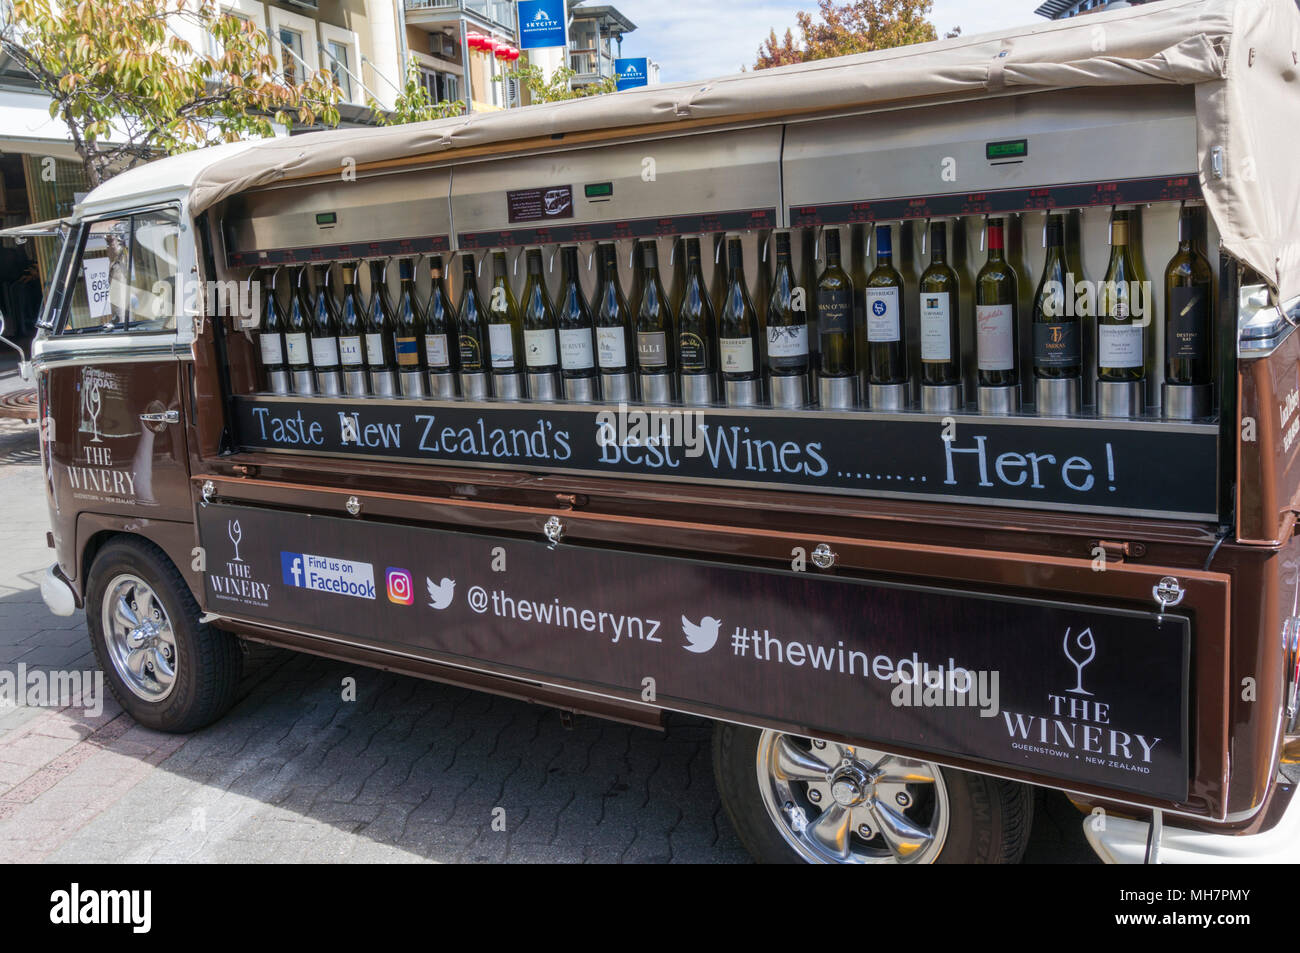 Queenstown South Island new zealand restored vw camper van the winedub for wine tasting events from the winery Queenstown town centre new zealand - Stock Image